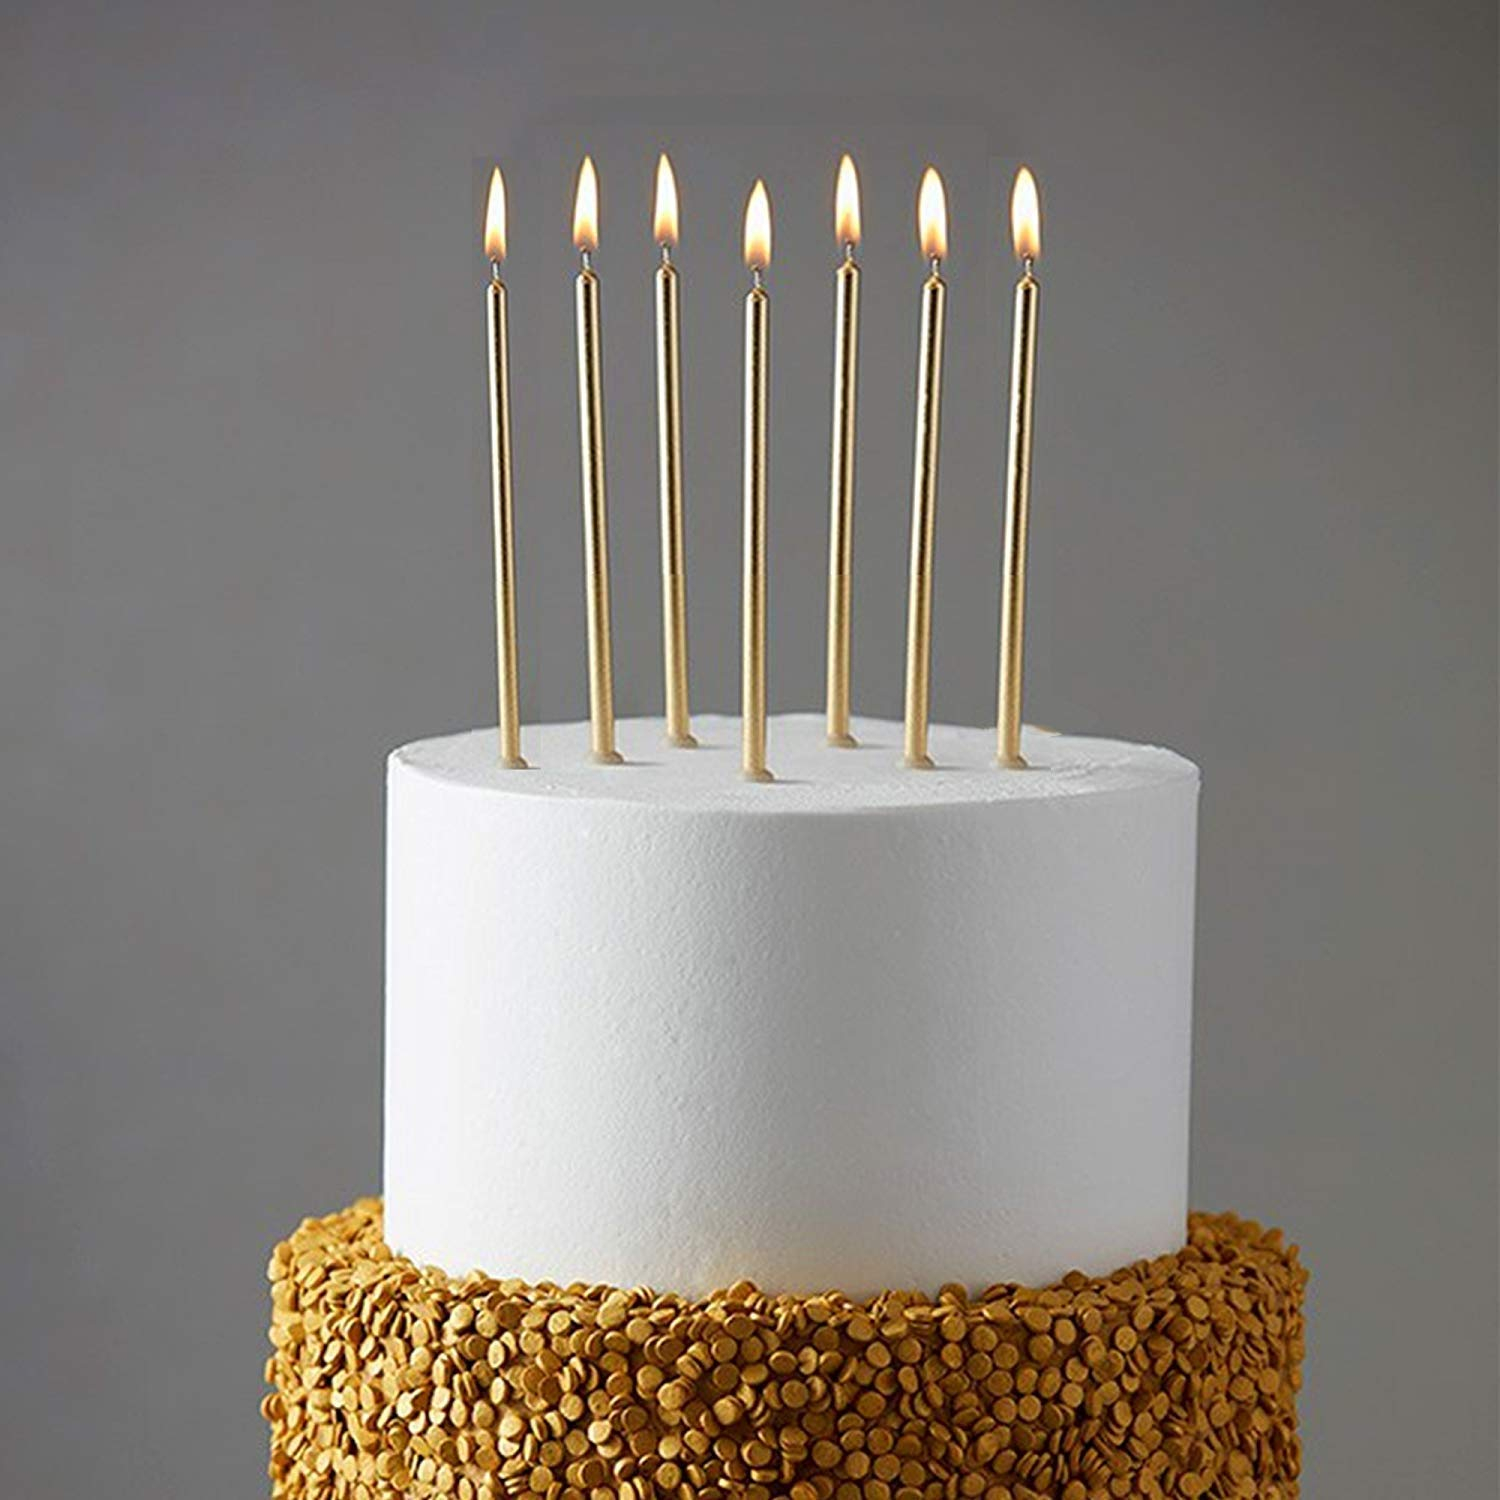 Unique Birthday Cakes Cheap Unique Birthday Candles For Cakes Find Unique Birthday